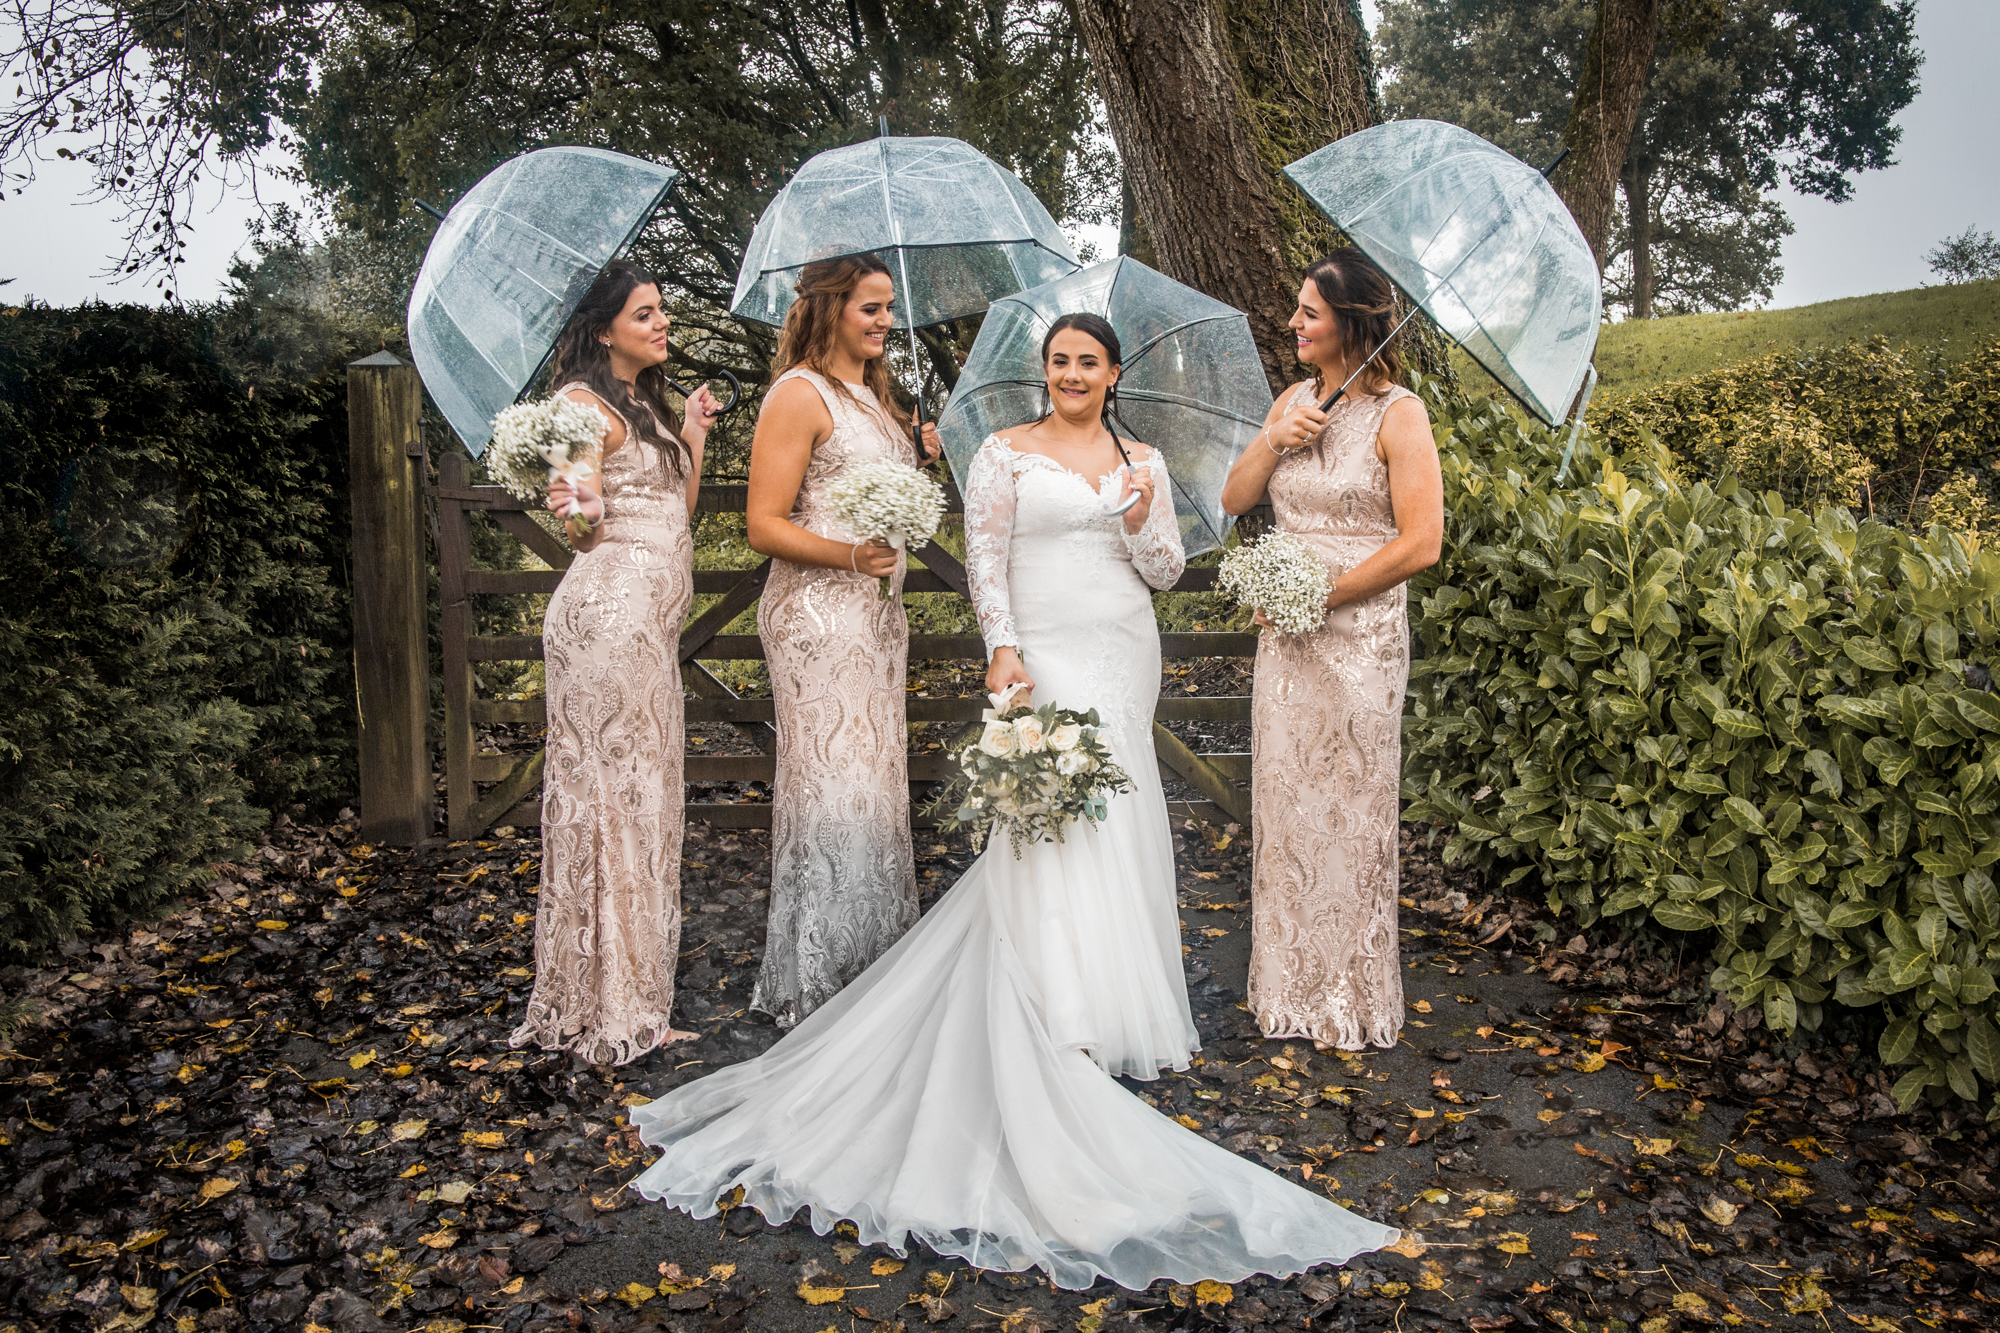 Group Wedding Photography in Swansea and the Gower